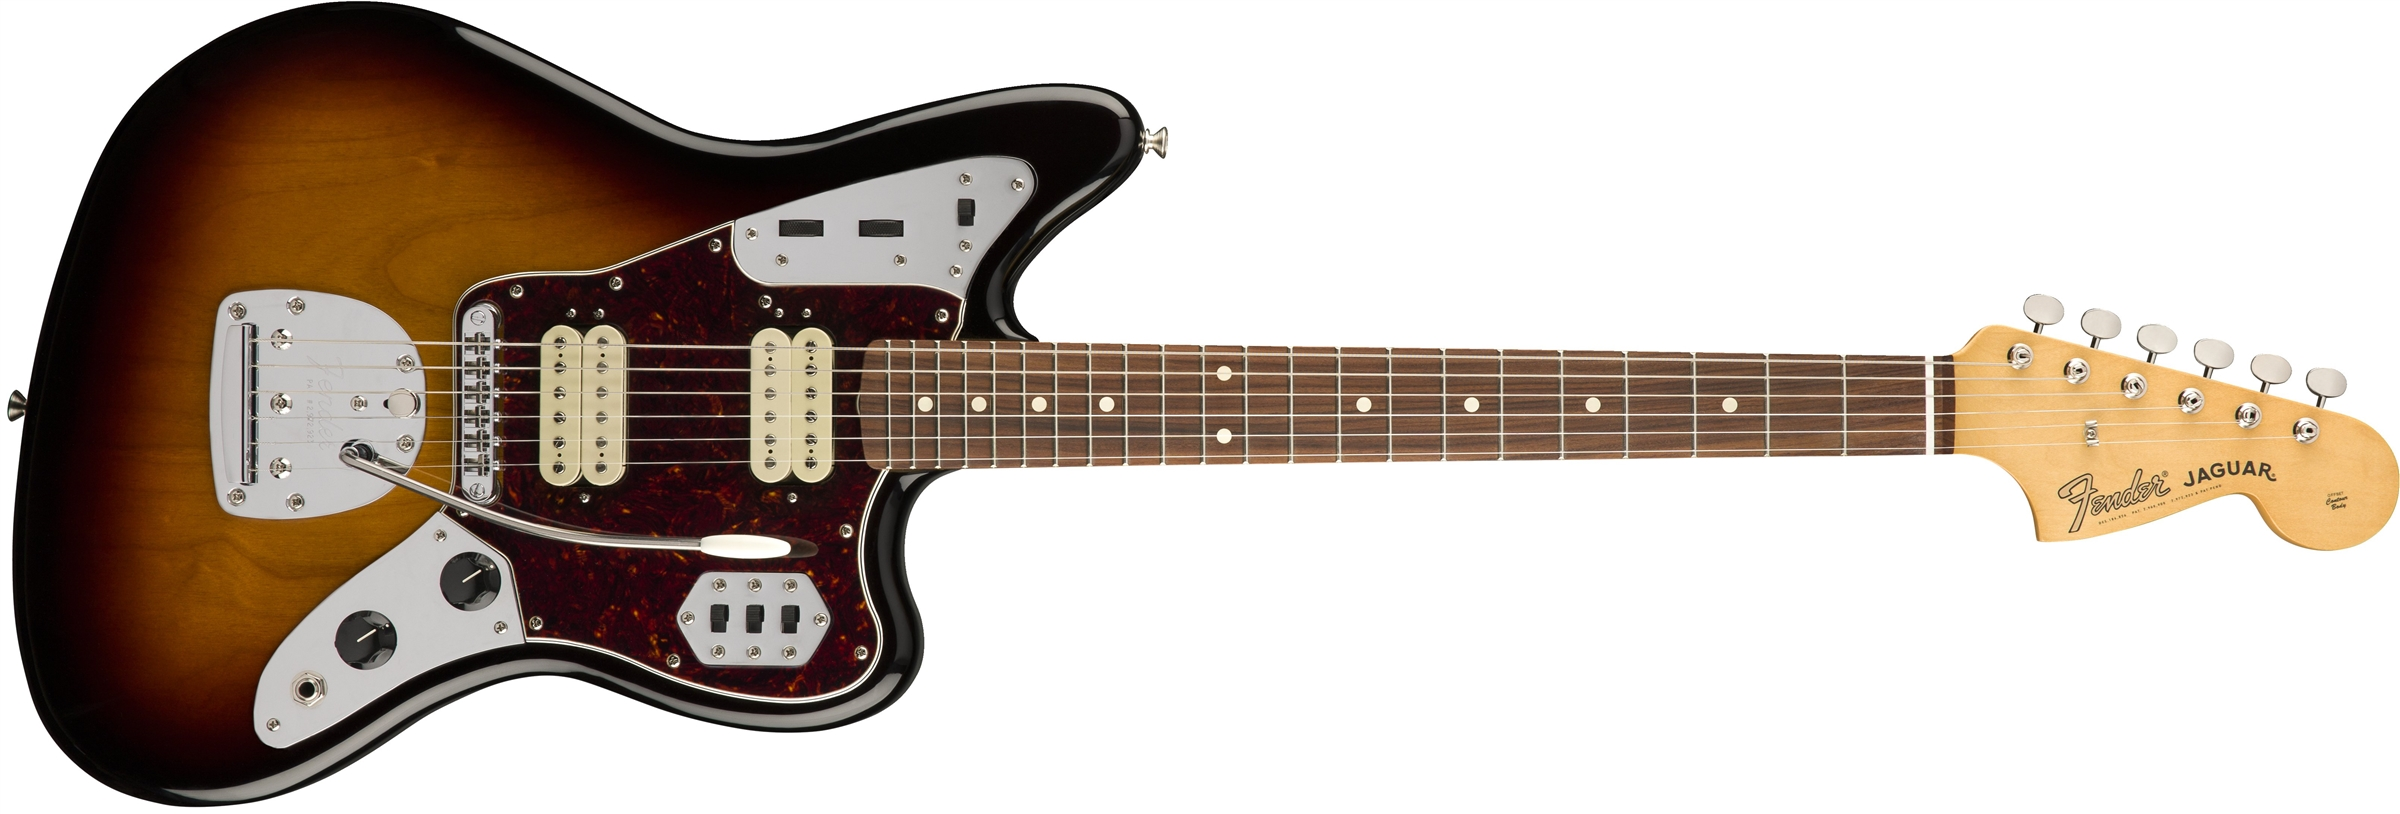 classic player jaguar special hh fender electric guitars rh shop fender com fender classic player jaguar wiring diagram fender classic player jaguar wiring diagram